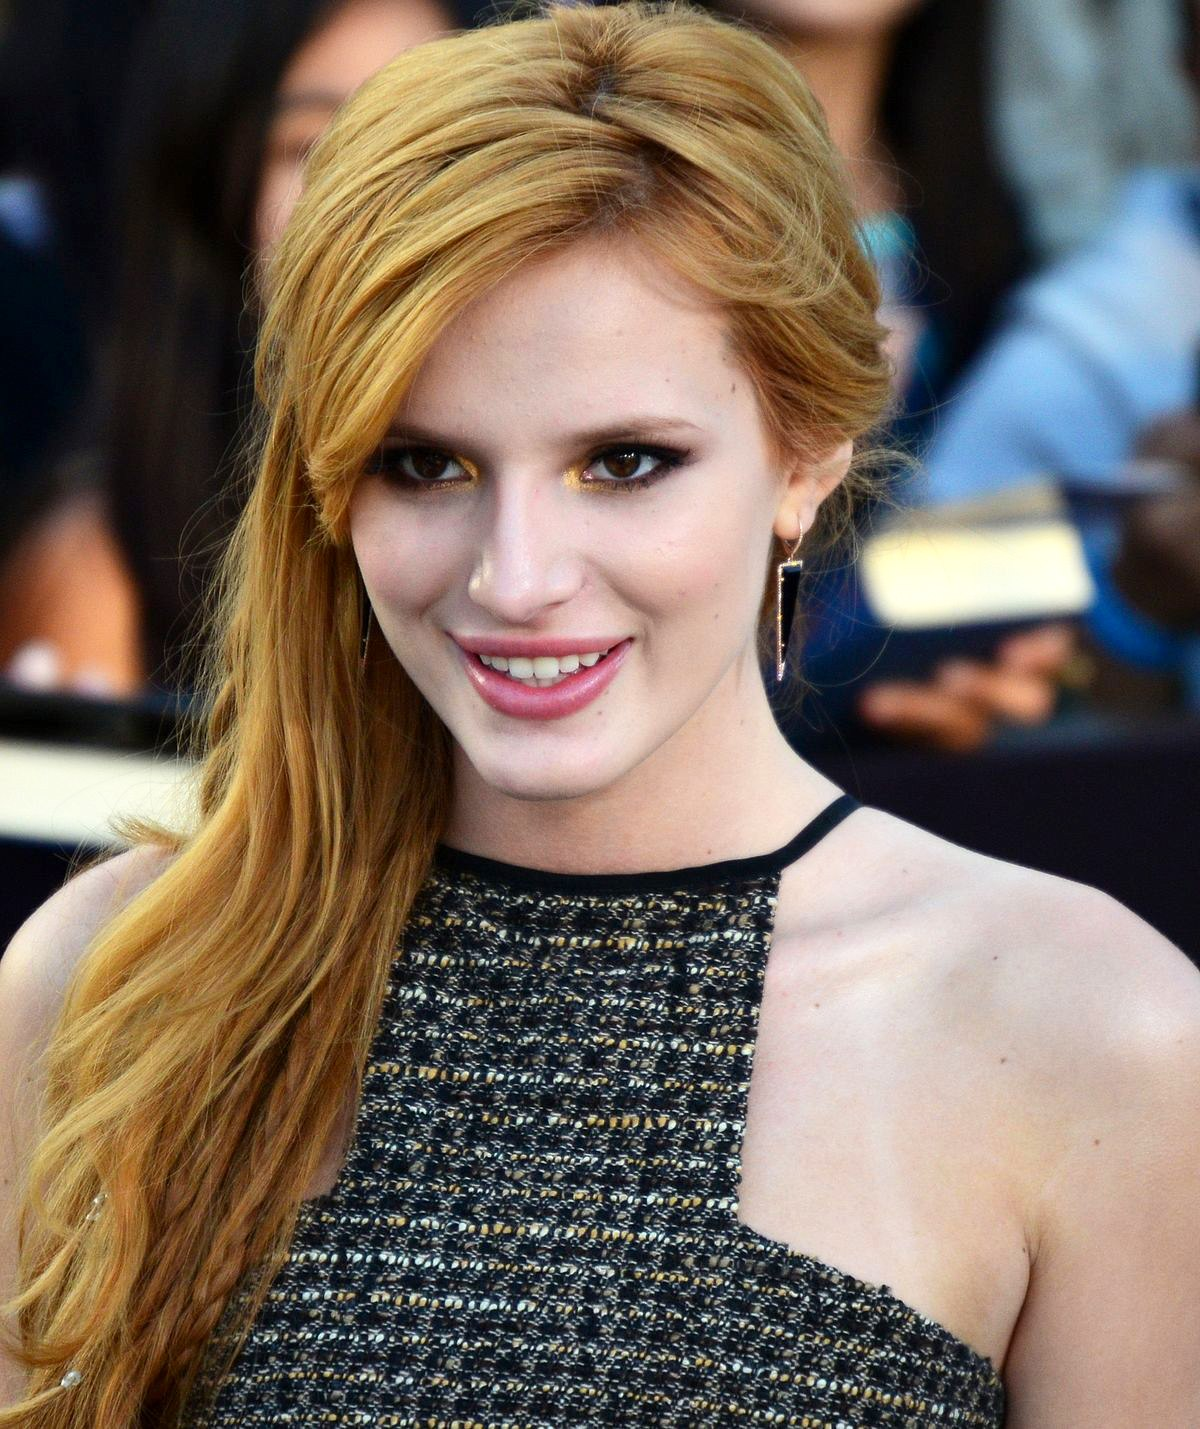 Bella thorne life information - Bella Thorne Life Information 16